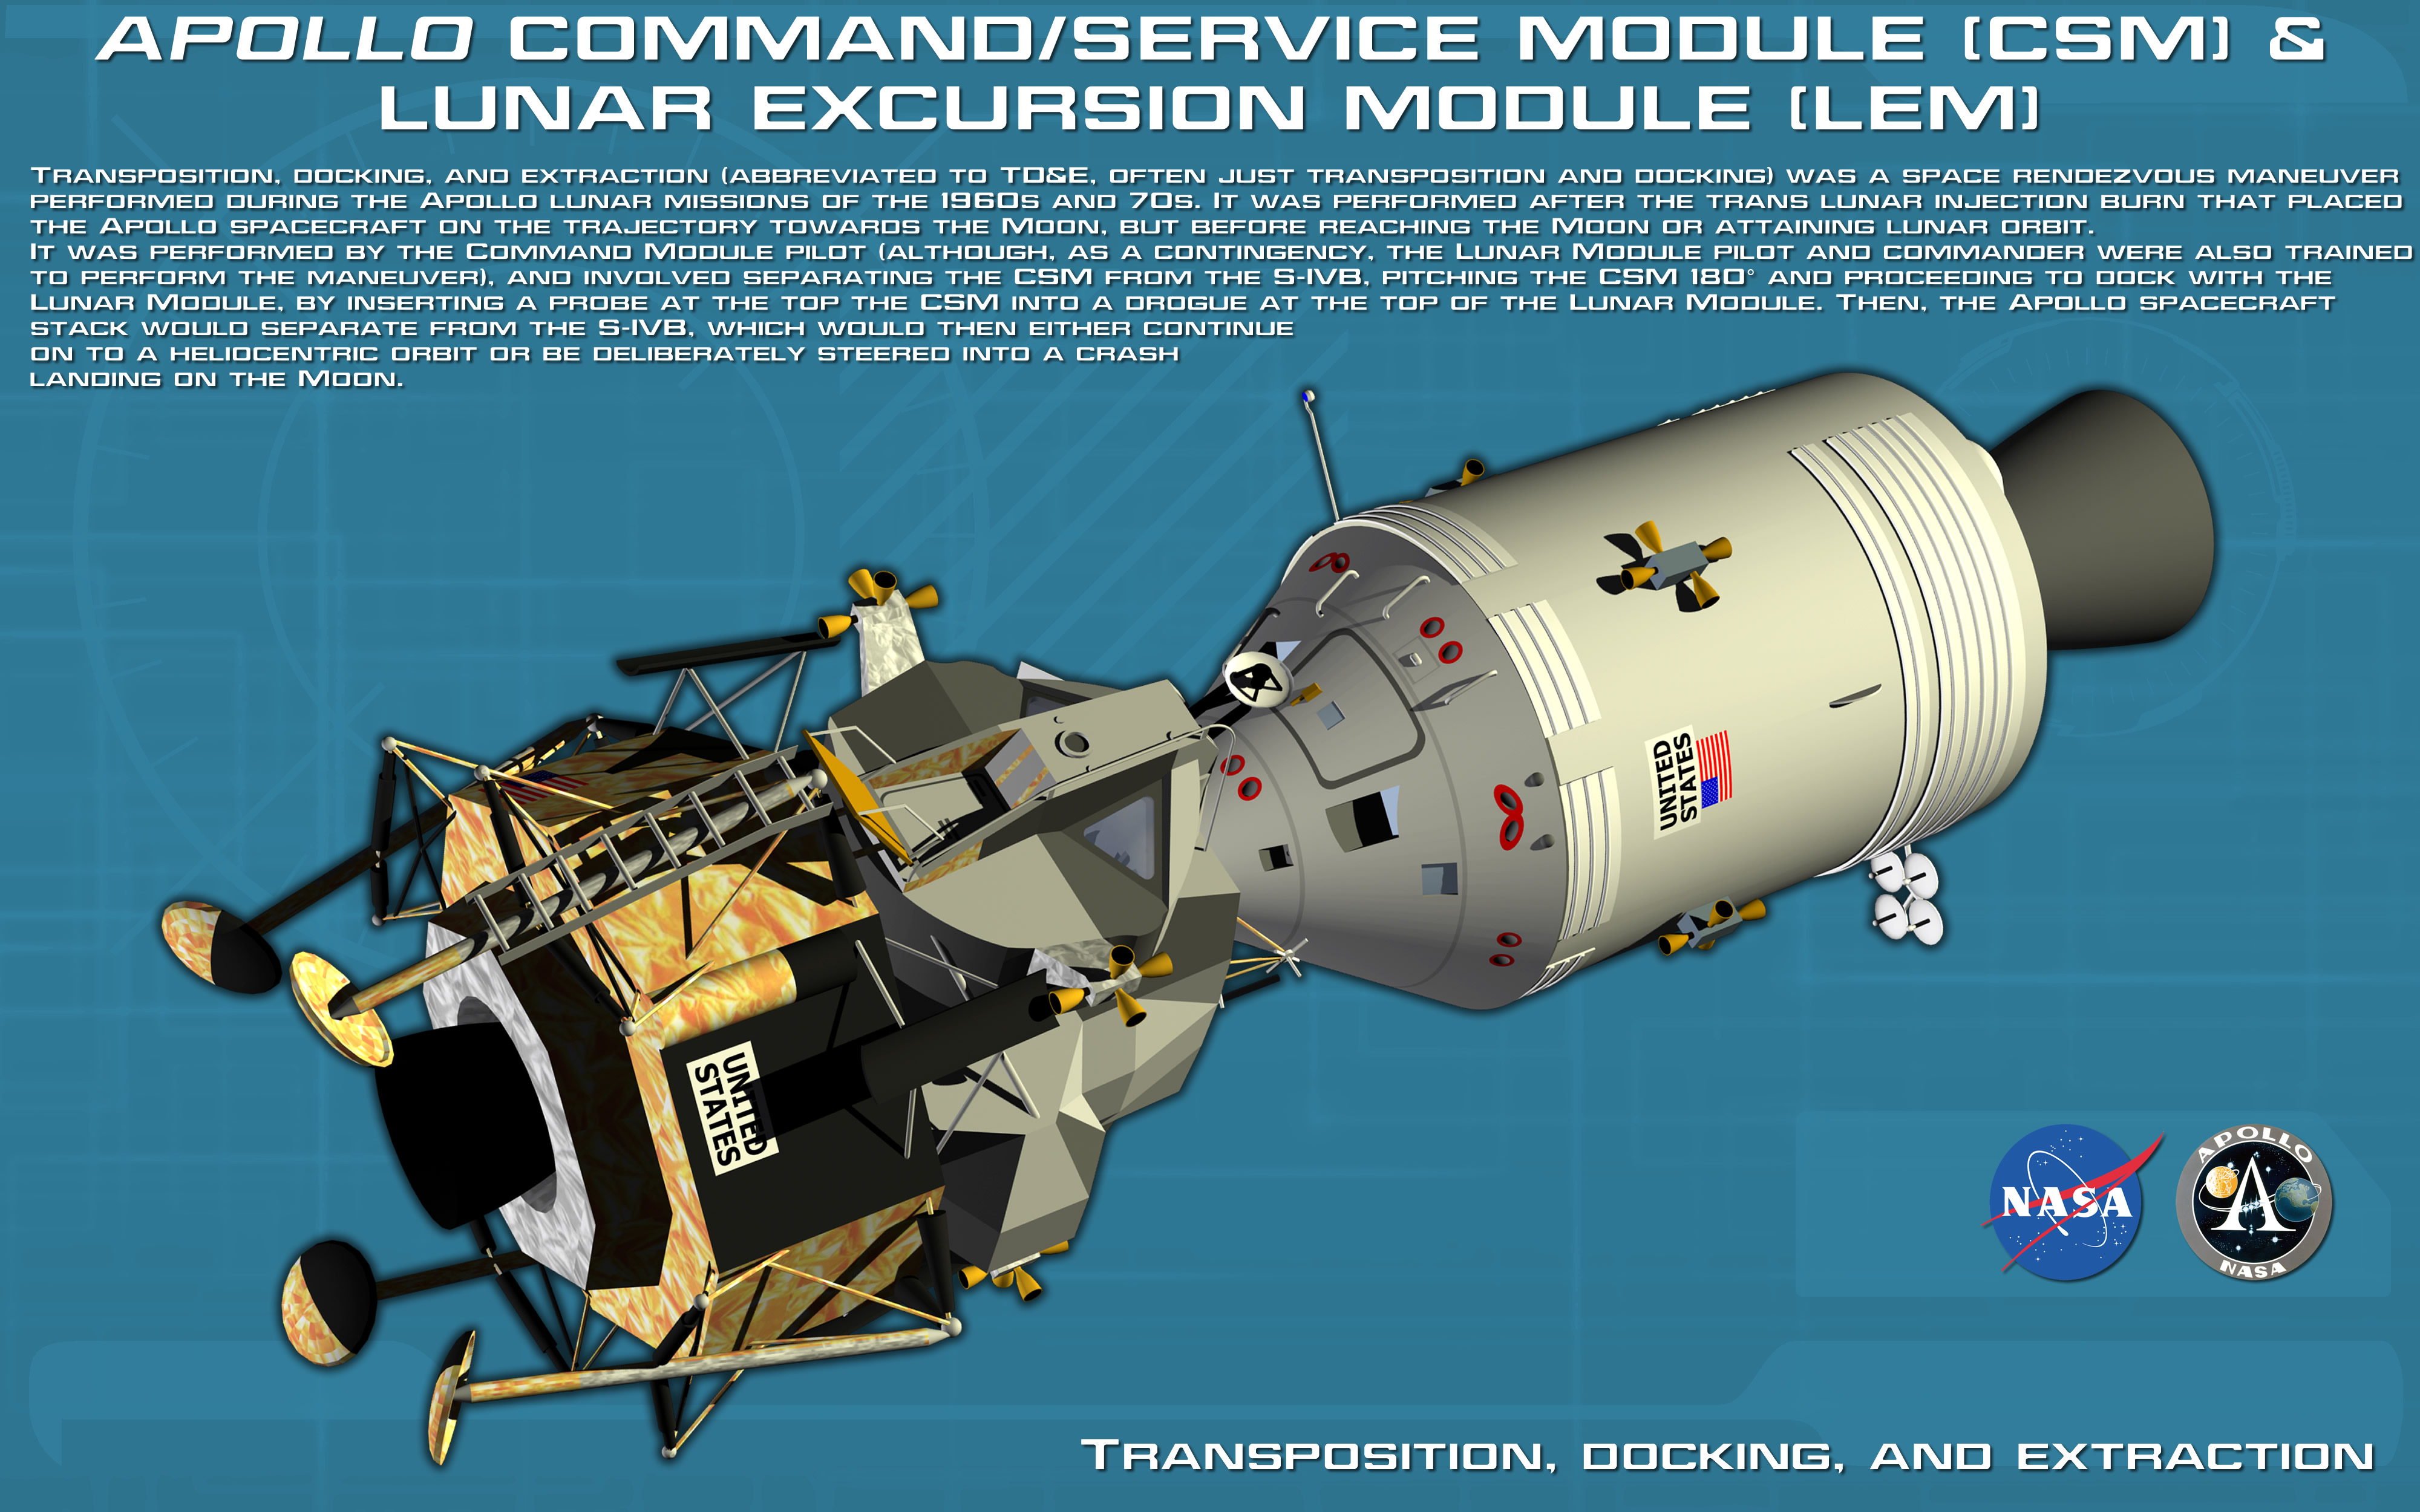 nasa apollo spacecraft command and service module news reference - photo #9